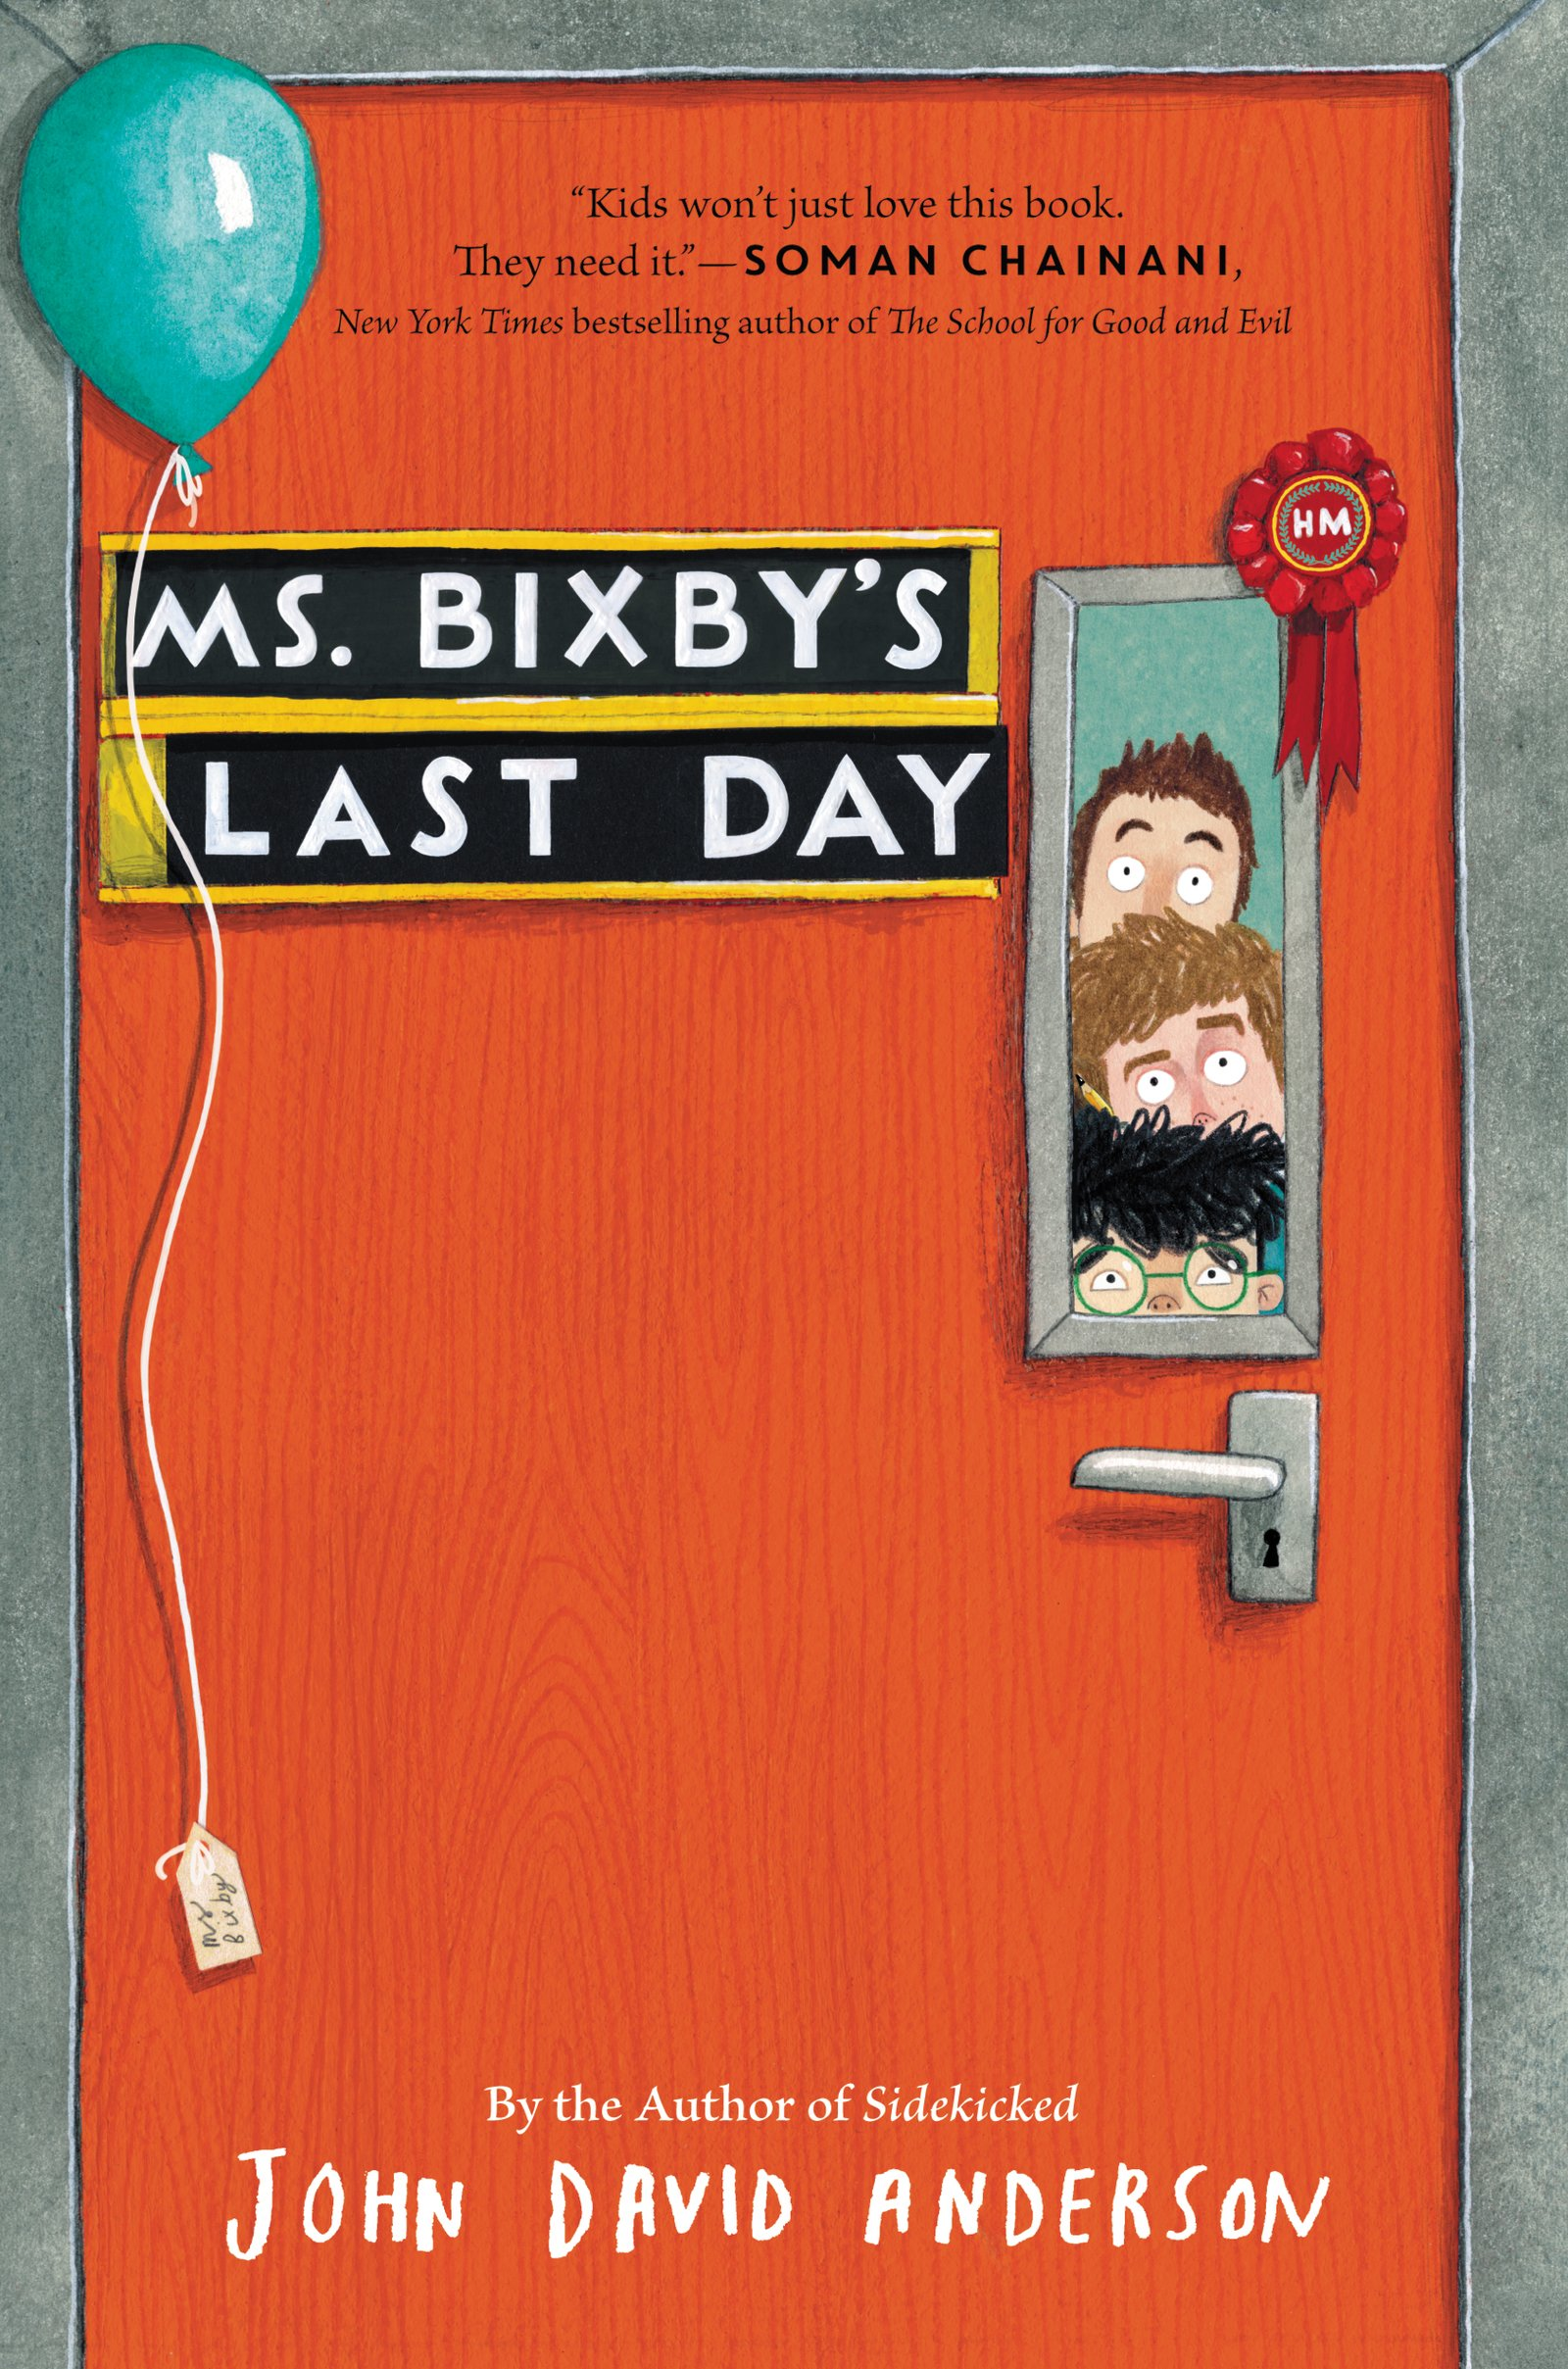 Image result for ms bixby's last day